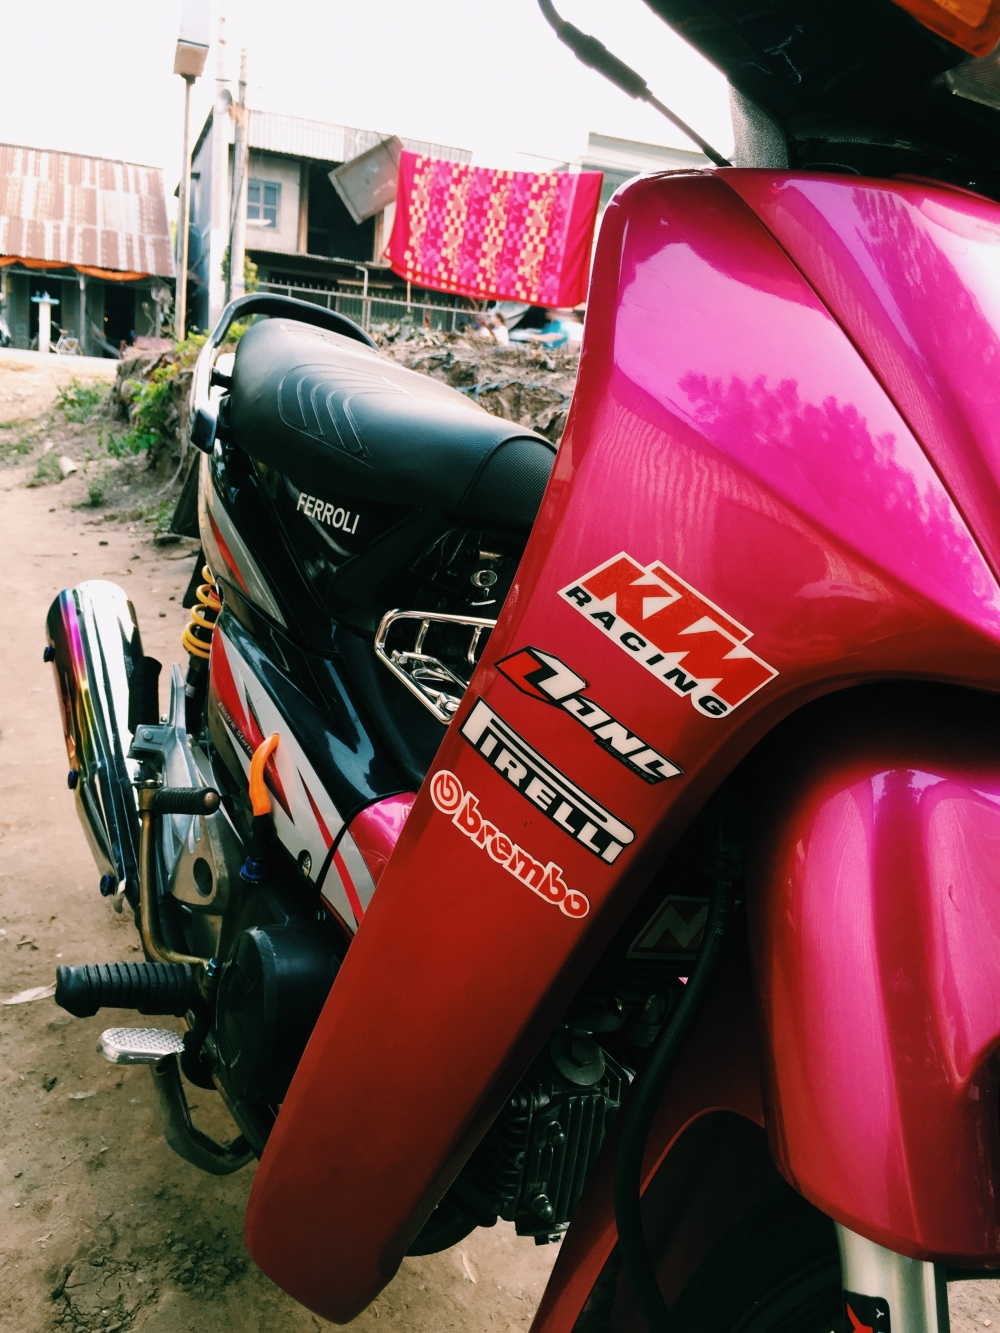 wave 50cc hoc sinh tap tanh don - 5